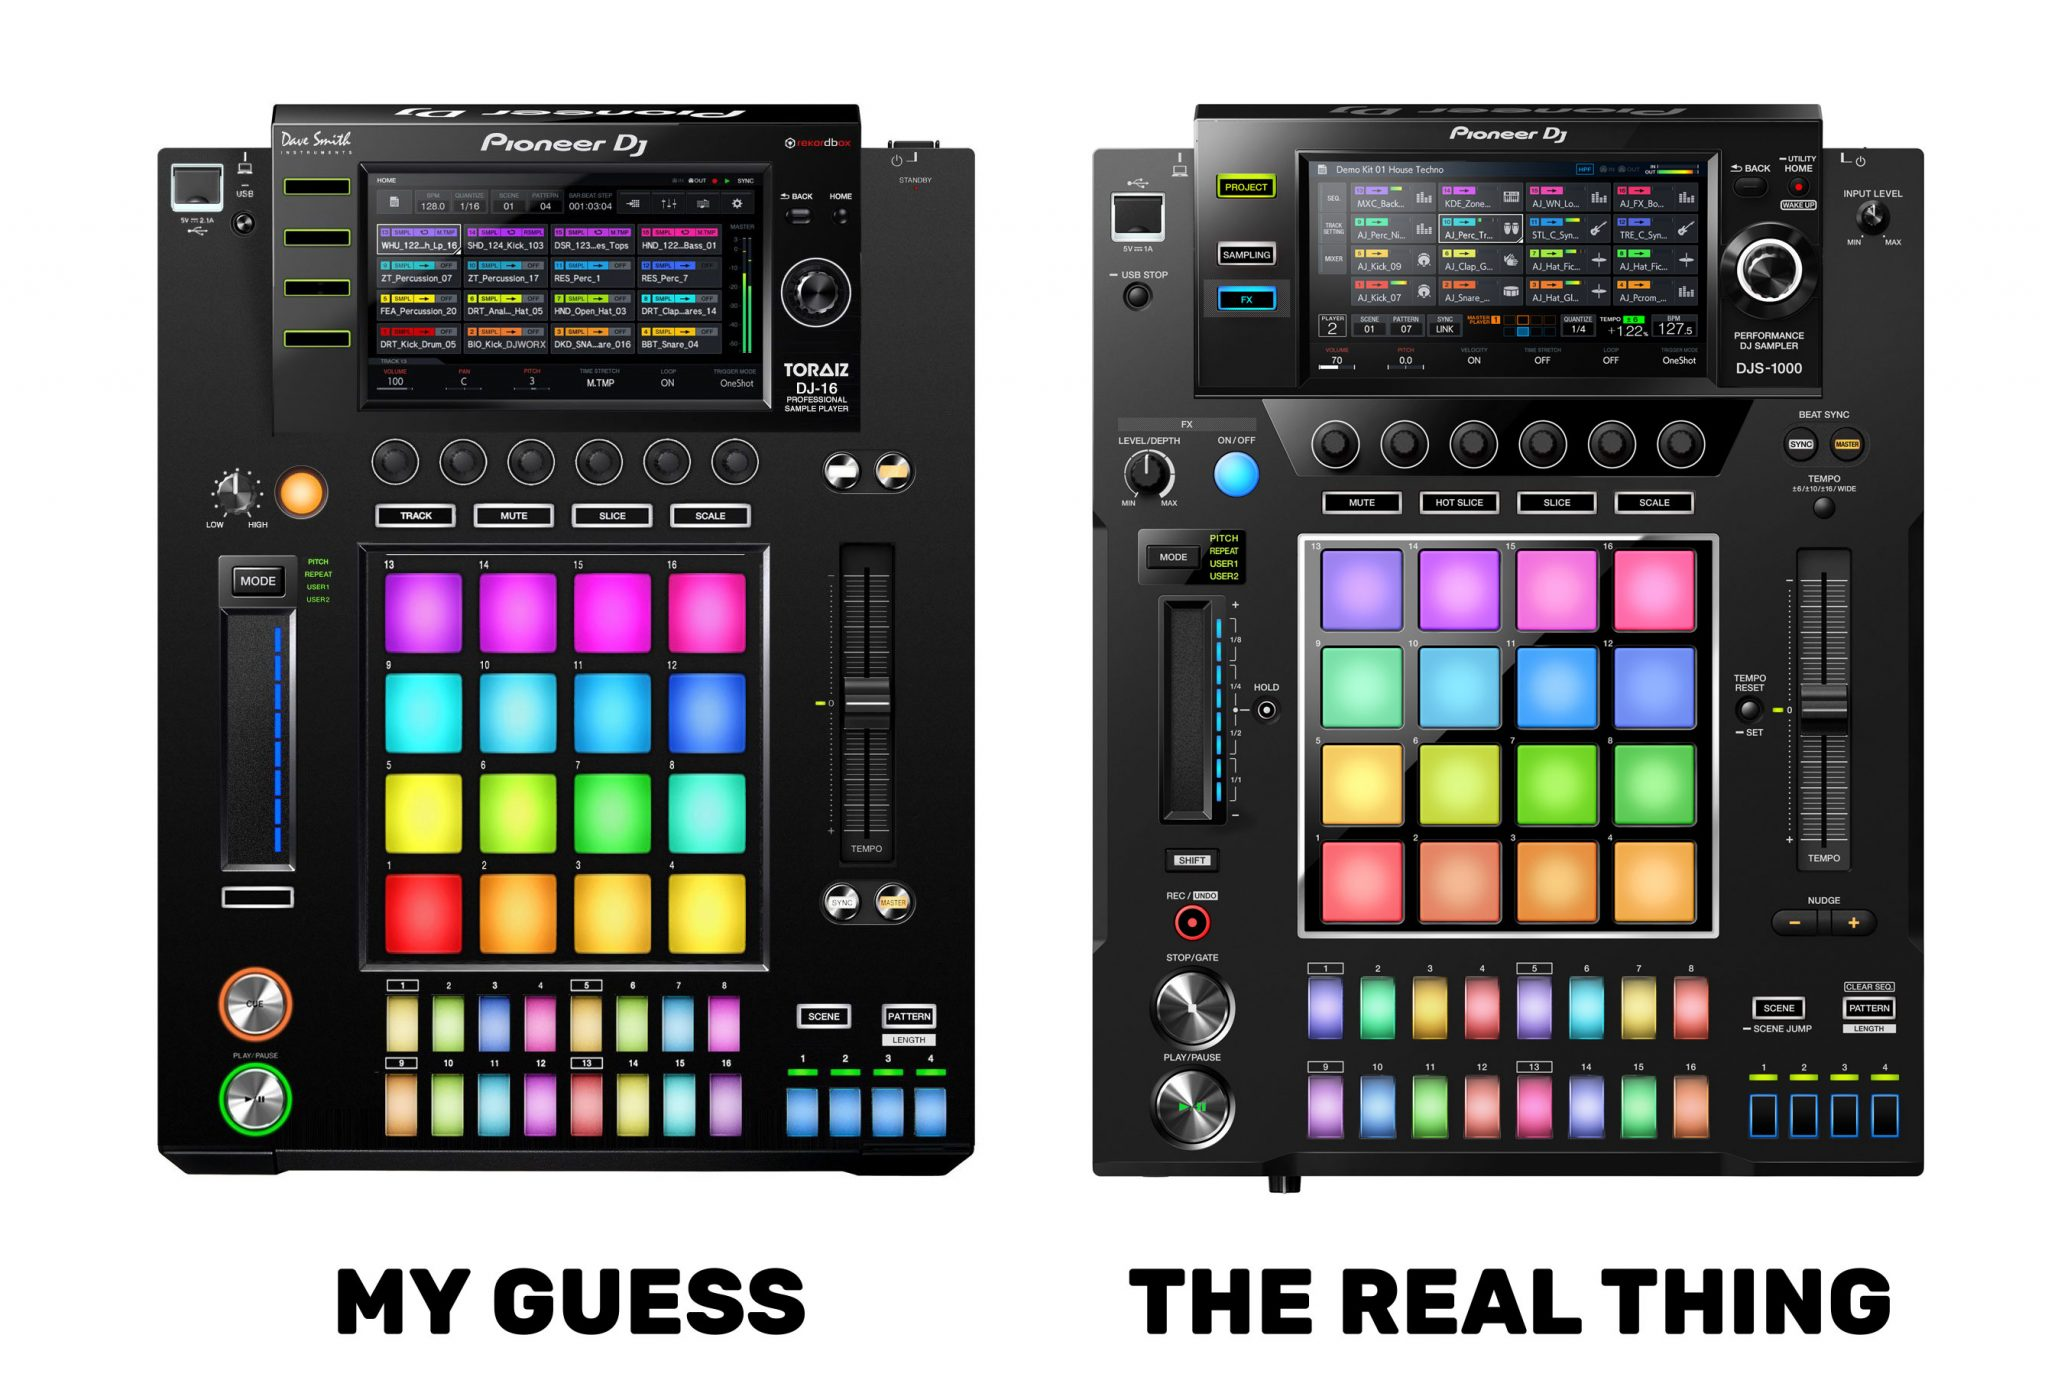 Bad Dj Set It 39s Real The Djs 1000 Is A Sampler And Sequencer In A